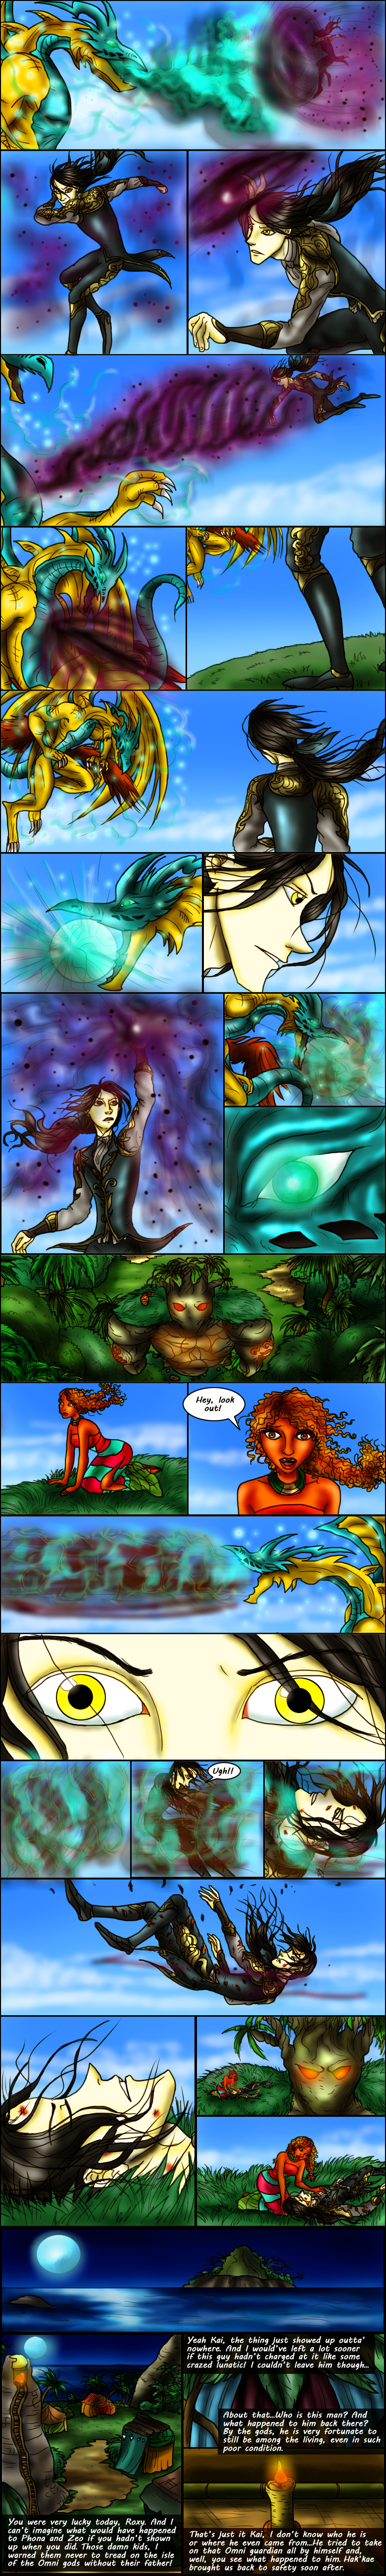 Page 20 – The Wrath of an Omni God